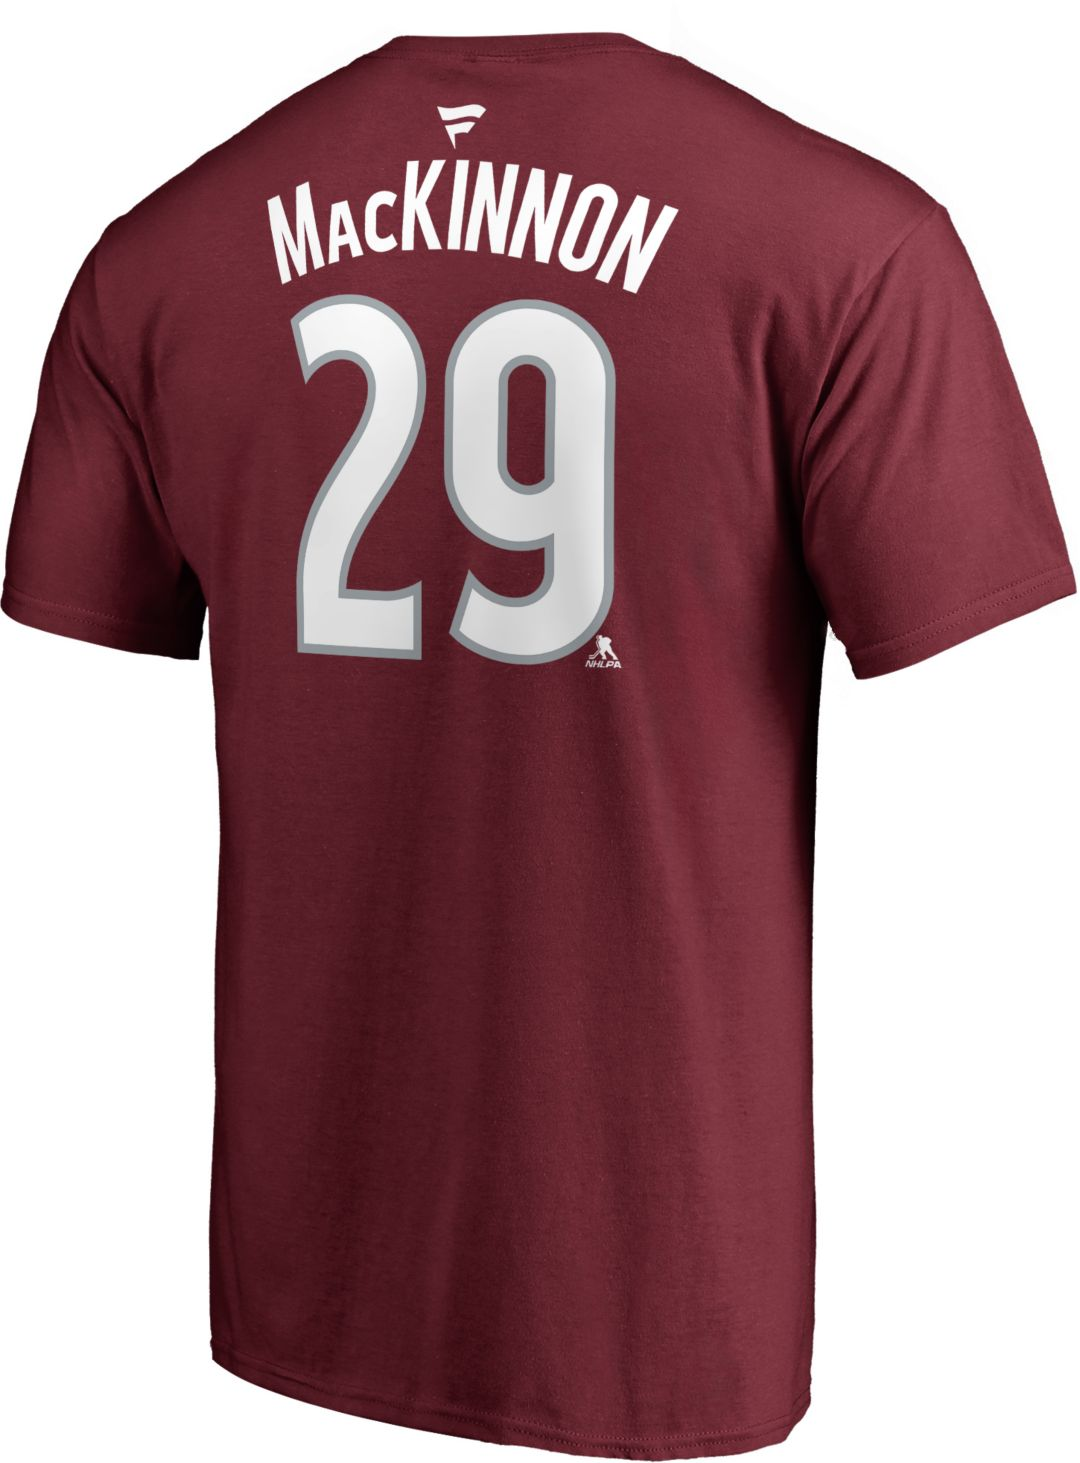 info for 61df8 7fa5b NHL Men's Colorado Avalanche Nathan MacKinnon #29 Maroon Player T-Shirt